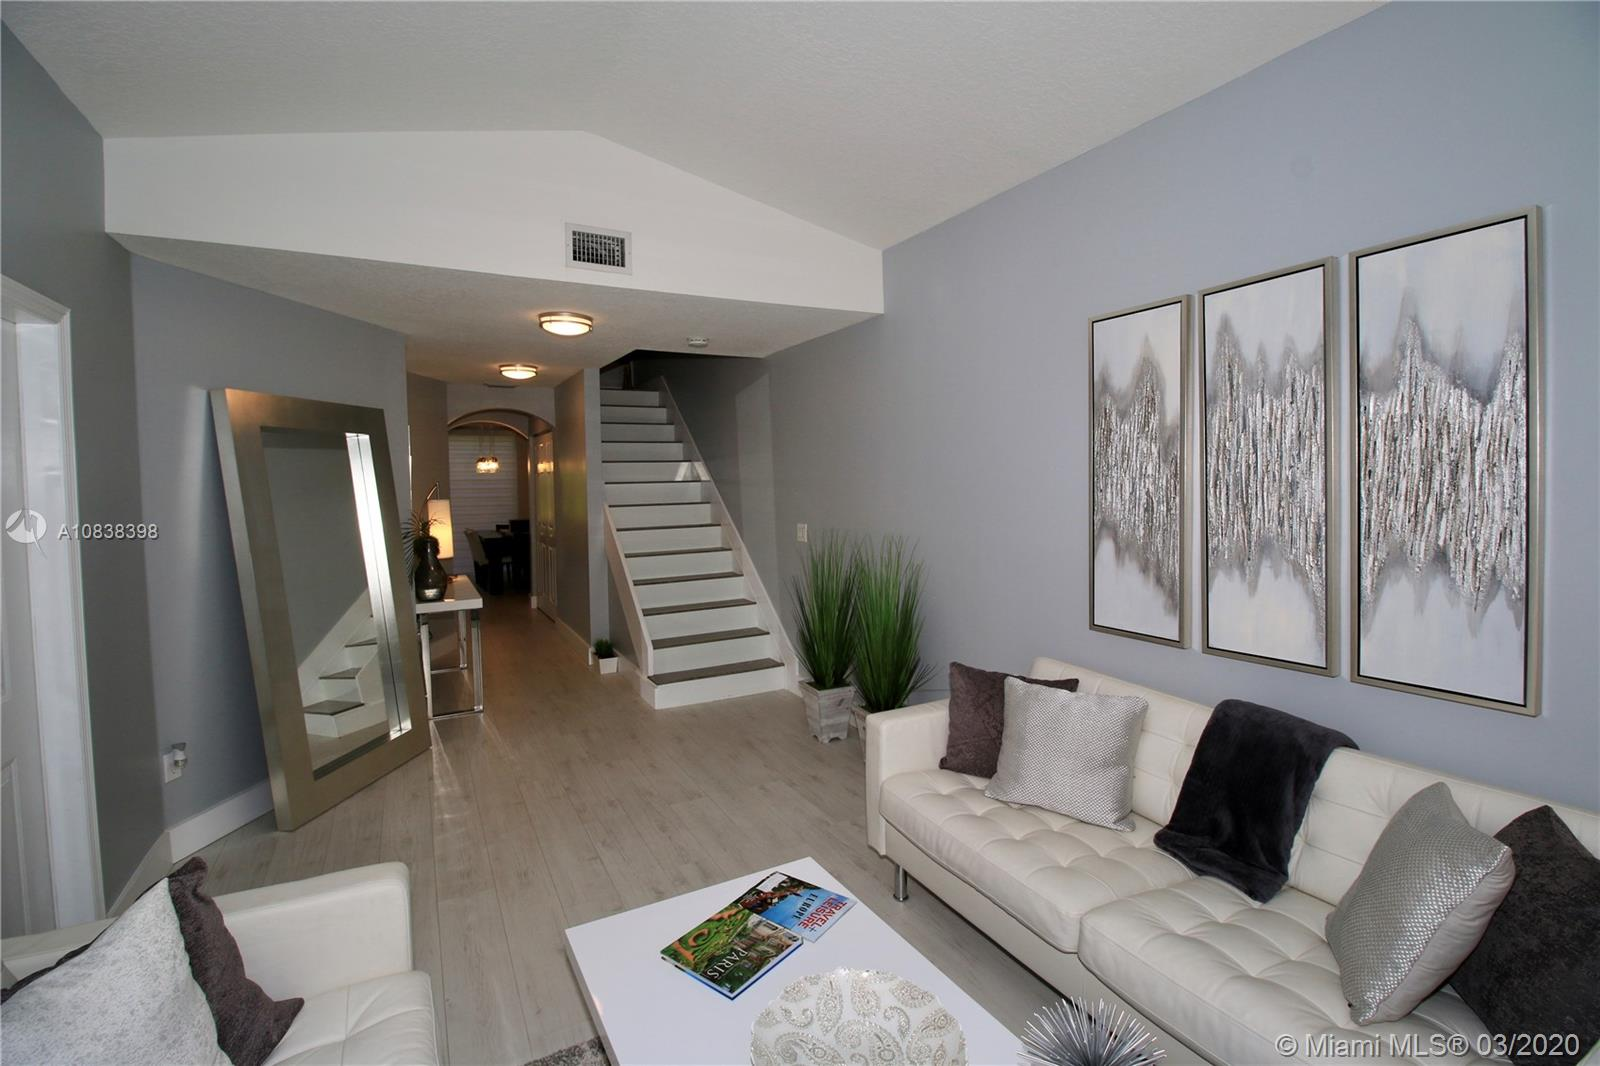 Immaculate, exquisitely designed 2-story townhome with a private patio that invites comfort, and exudes modern elegance. 1bed/1 full bath downstairs and 2 master suites upstairs, generous living space and stylish finishes, you'll enjoy a perfect setting for relaxing and entertaining. Beautiful waterproof modern wood floors and plenty of natural night flow throughout the home's open & airy layout. Modern kitchen cabinets, white quartz waterfall counter-top, new bathrooms, master bath with SS shower bar, water proof wood floors throughout, all led light fixtures, horizontal flat sheer shades, top of the line SS appliances. Impressive, secluded and quiet backyard. AC is only 5 years old,